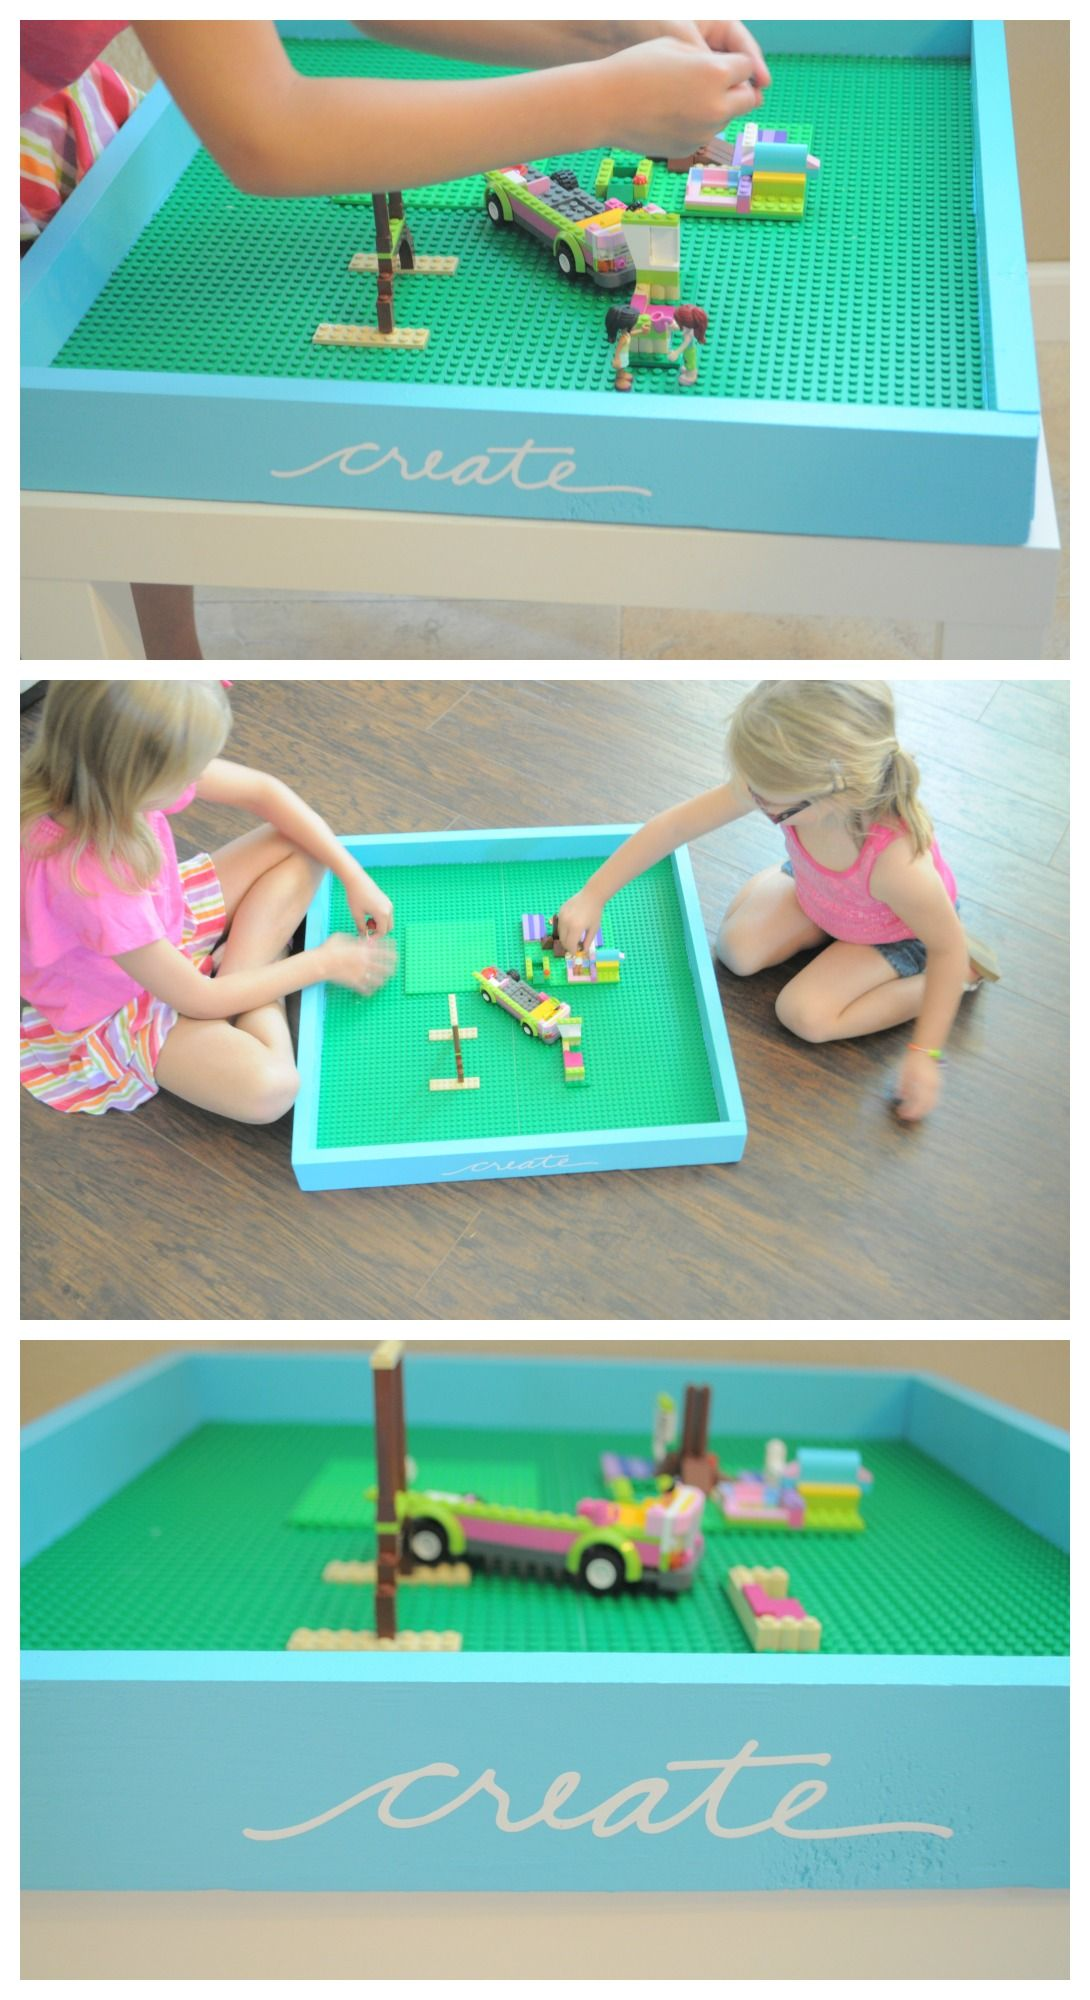 how to make a simple lego sofa princess sofia flip open tray on pinterest table projects and